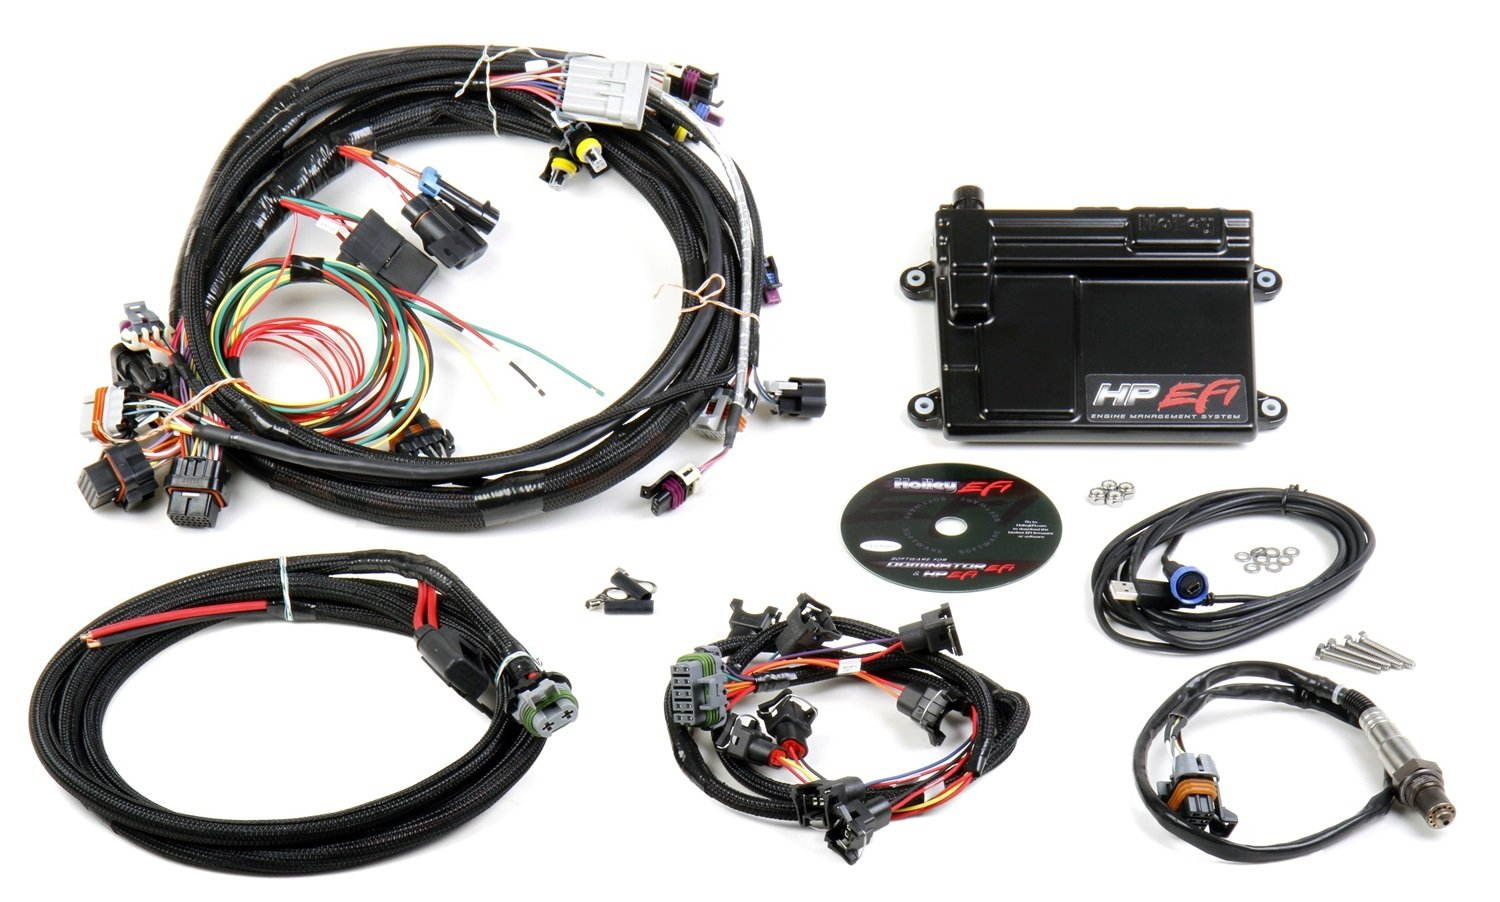 71yuQ%2BumfWL._SL1500_ amazon com holley 550 602 hp efi, ecu and harness kit automotive ecu wiring harness for 1999 mazda 626 at eliteediting.co